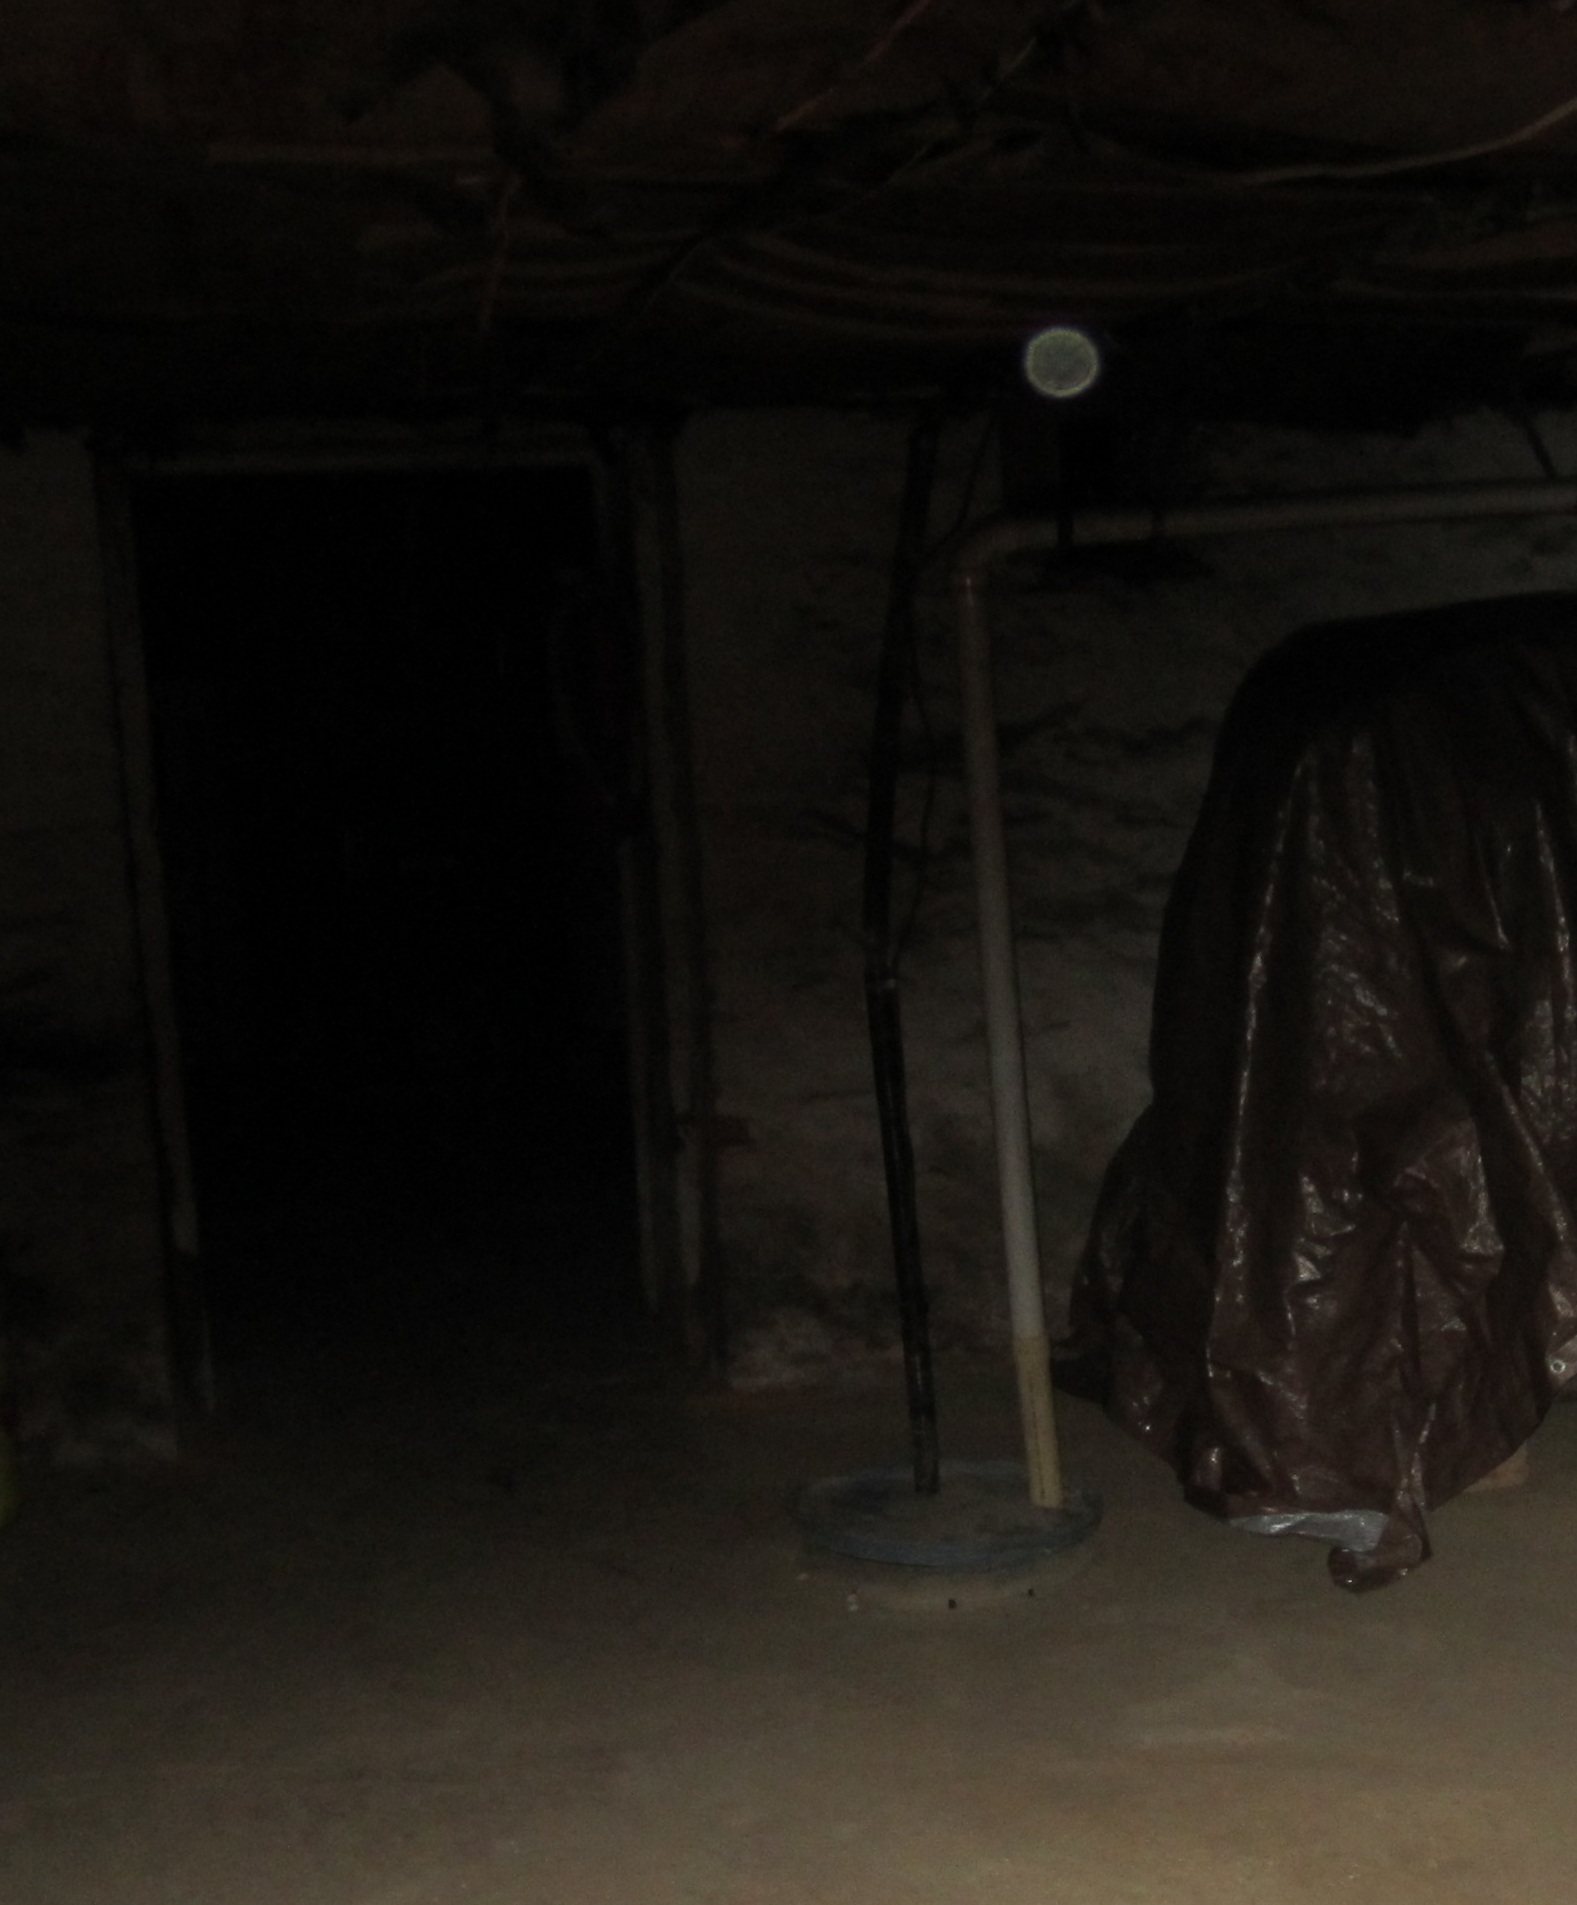 Precisely does Creepy scary basement apologise, but